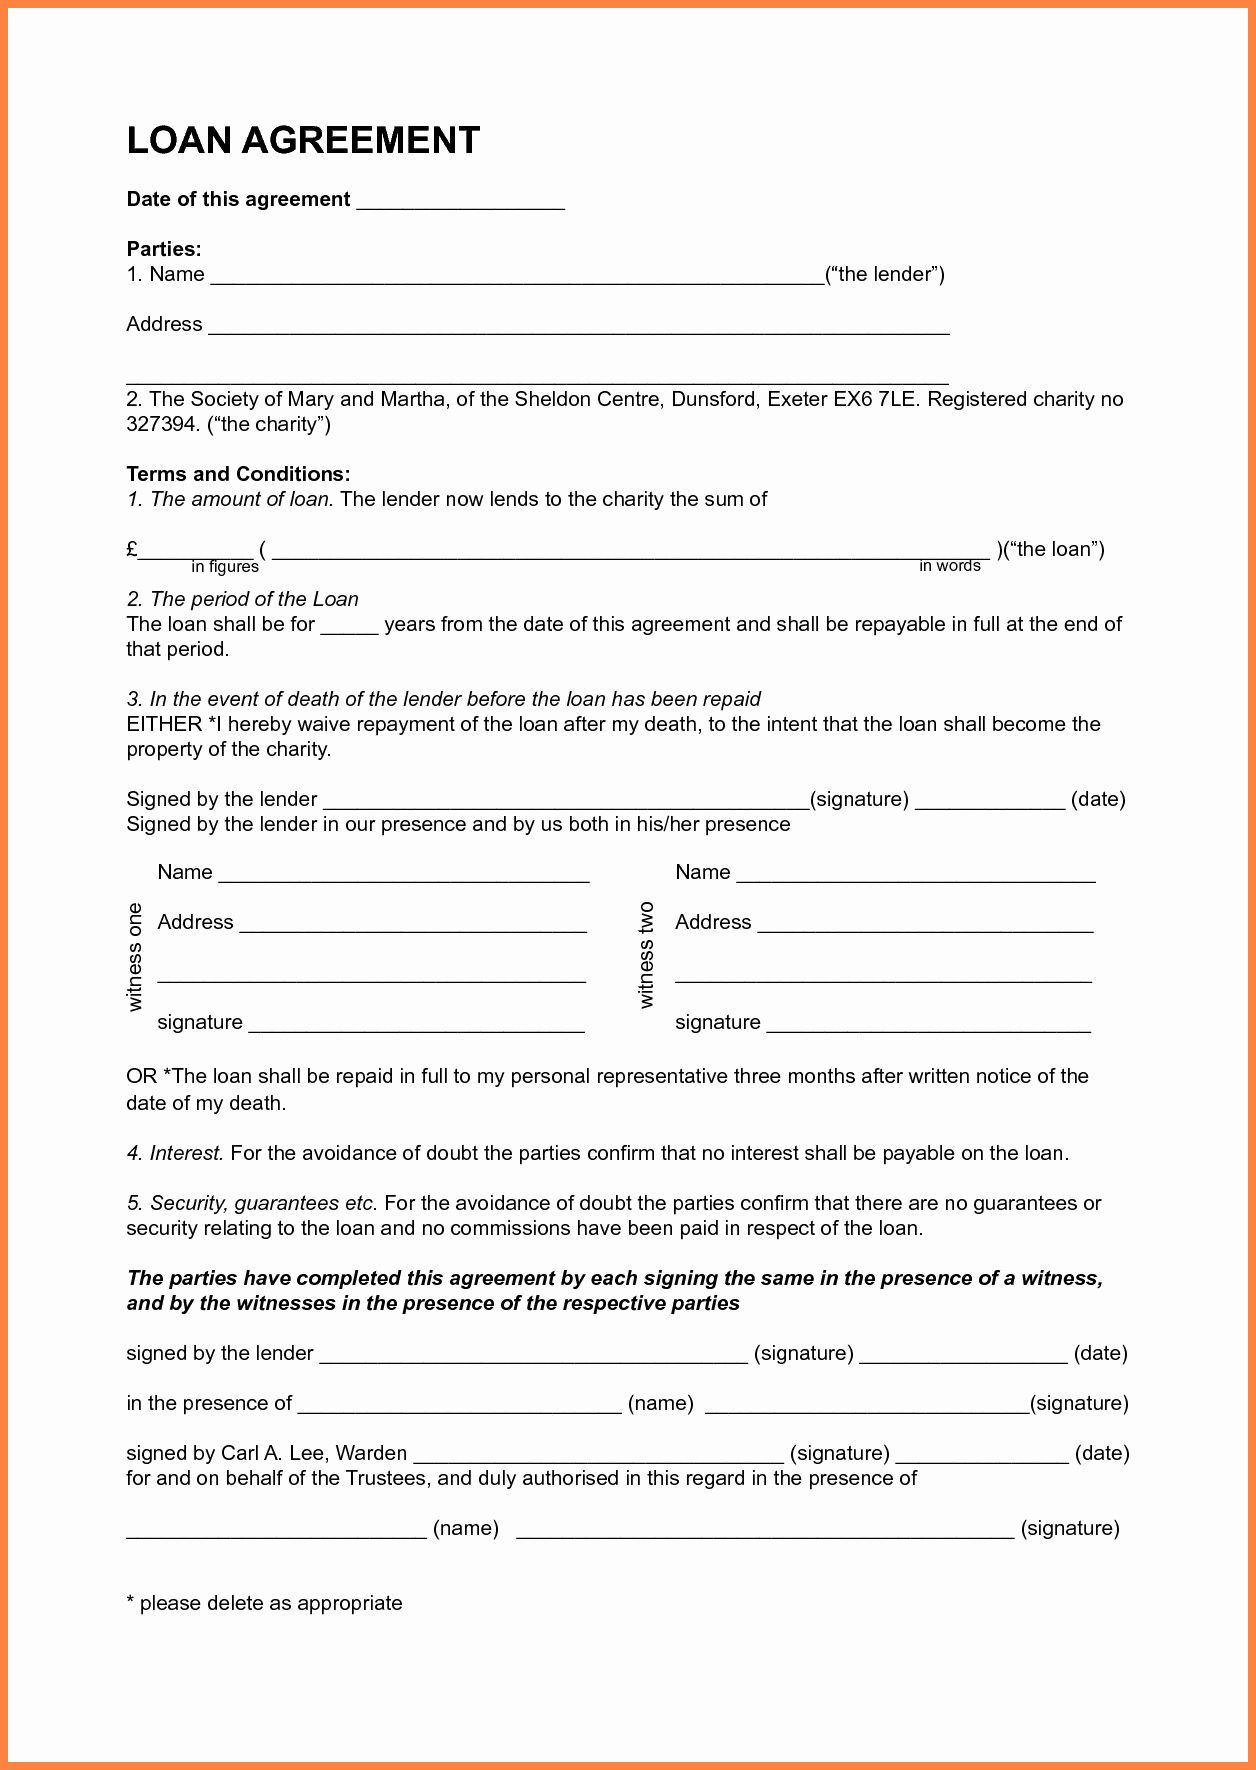 Personal Loan Agreement Template New 7 Template Loan Agreement Between Family Members Personal Loan Agreement Template Loan Agreement Personal Loans